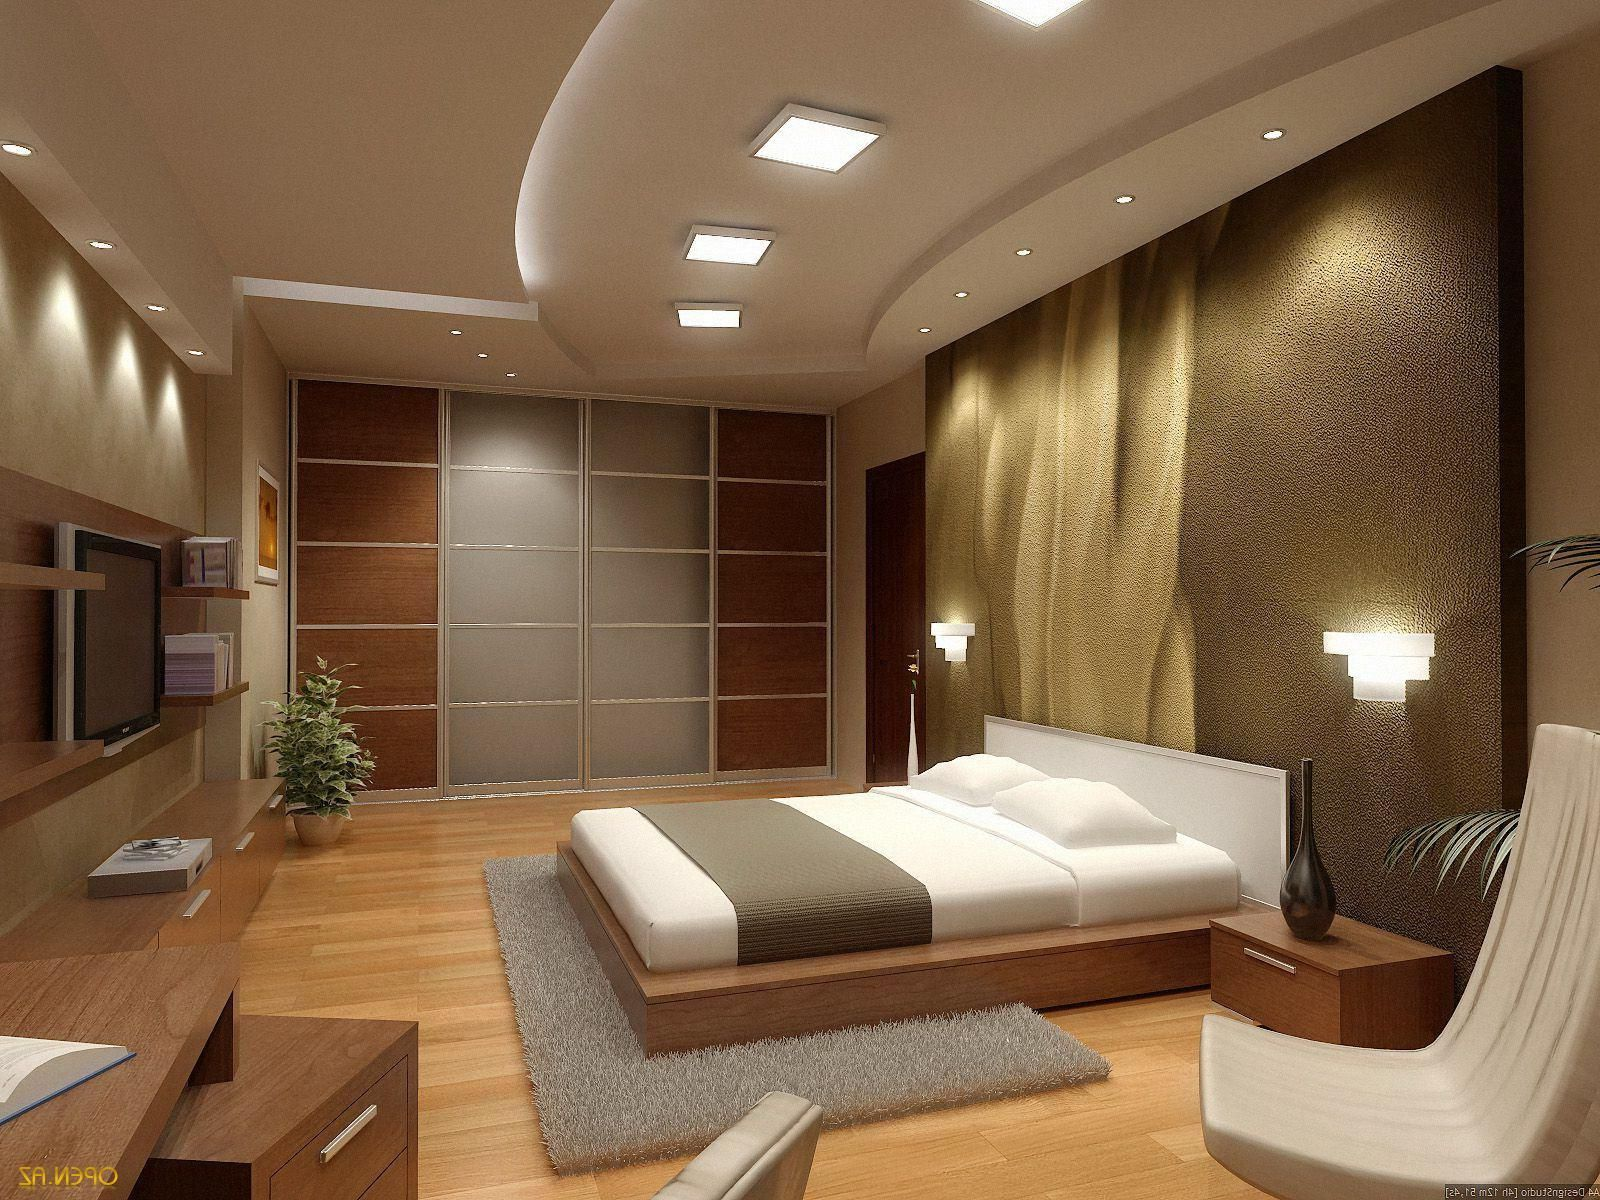 Simple Decorating For Bedrooms Brown Theme Bedroom For Men With Wooden Shelves And Modern